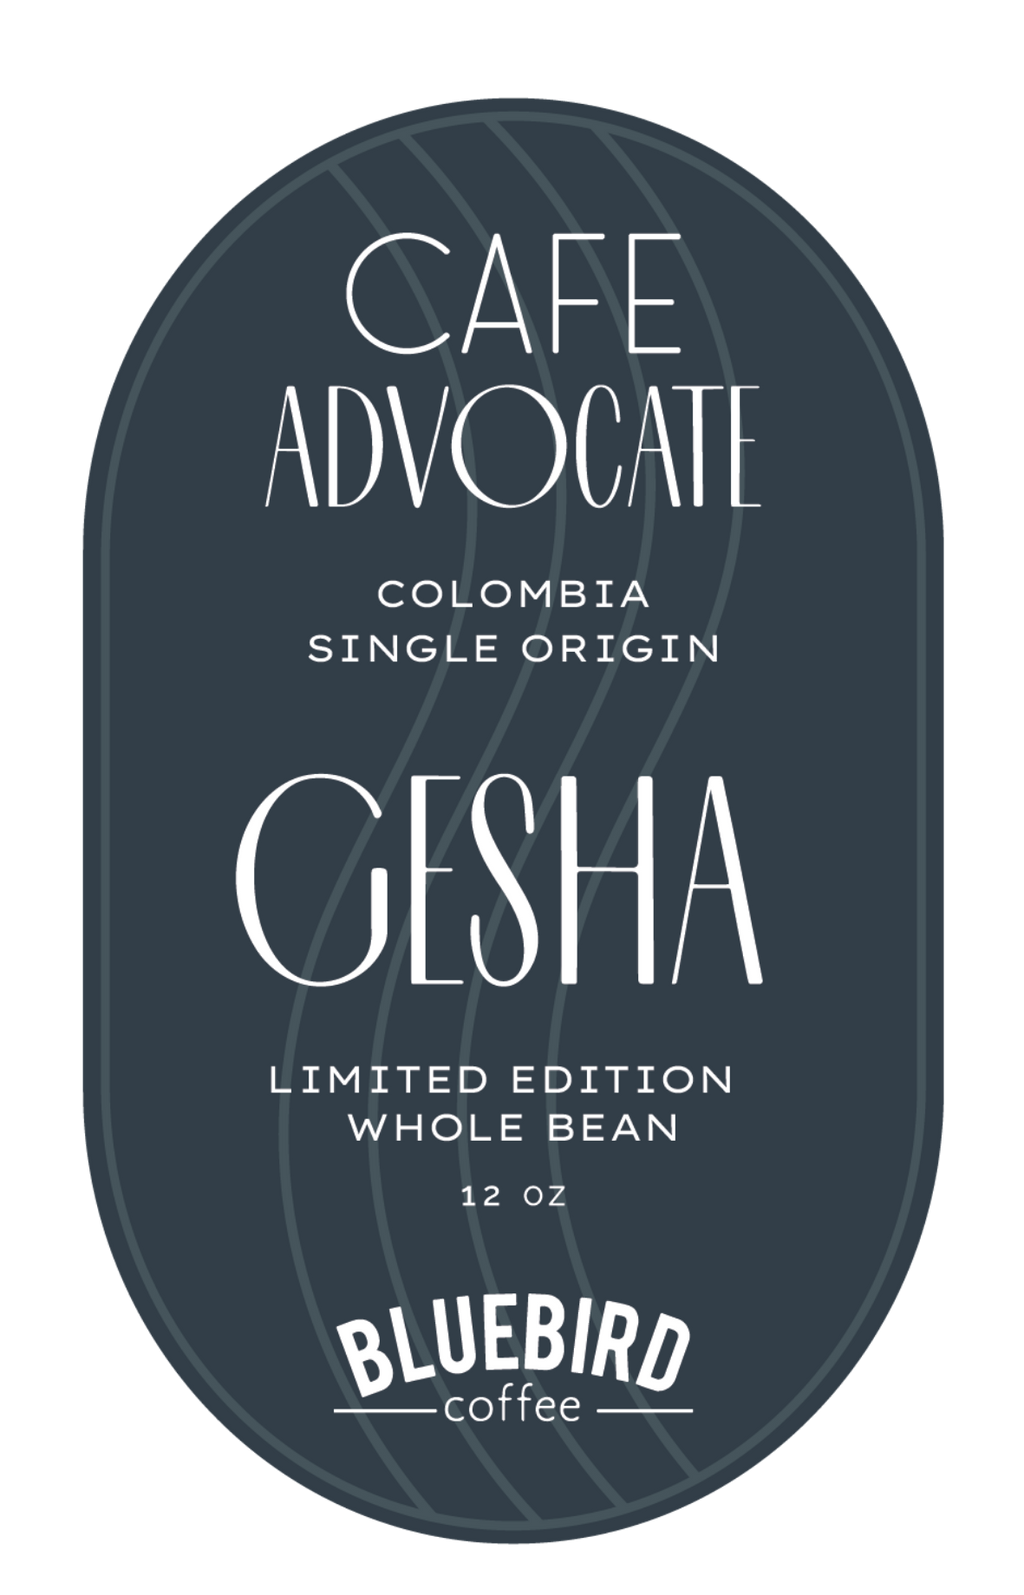 Gesha | Colombia - cafeadvocate